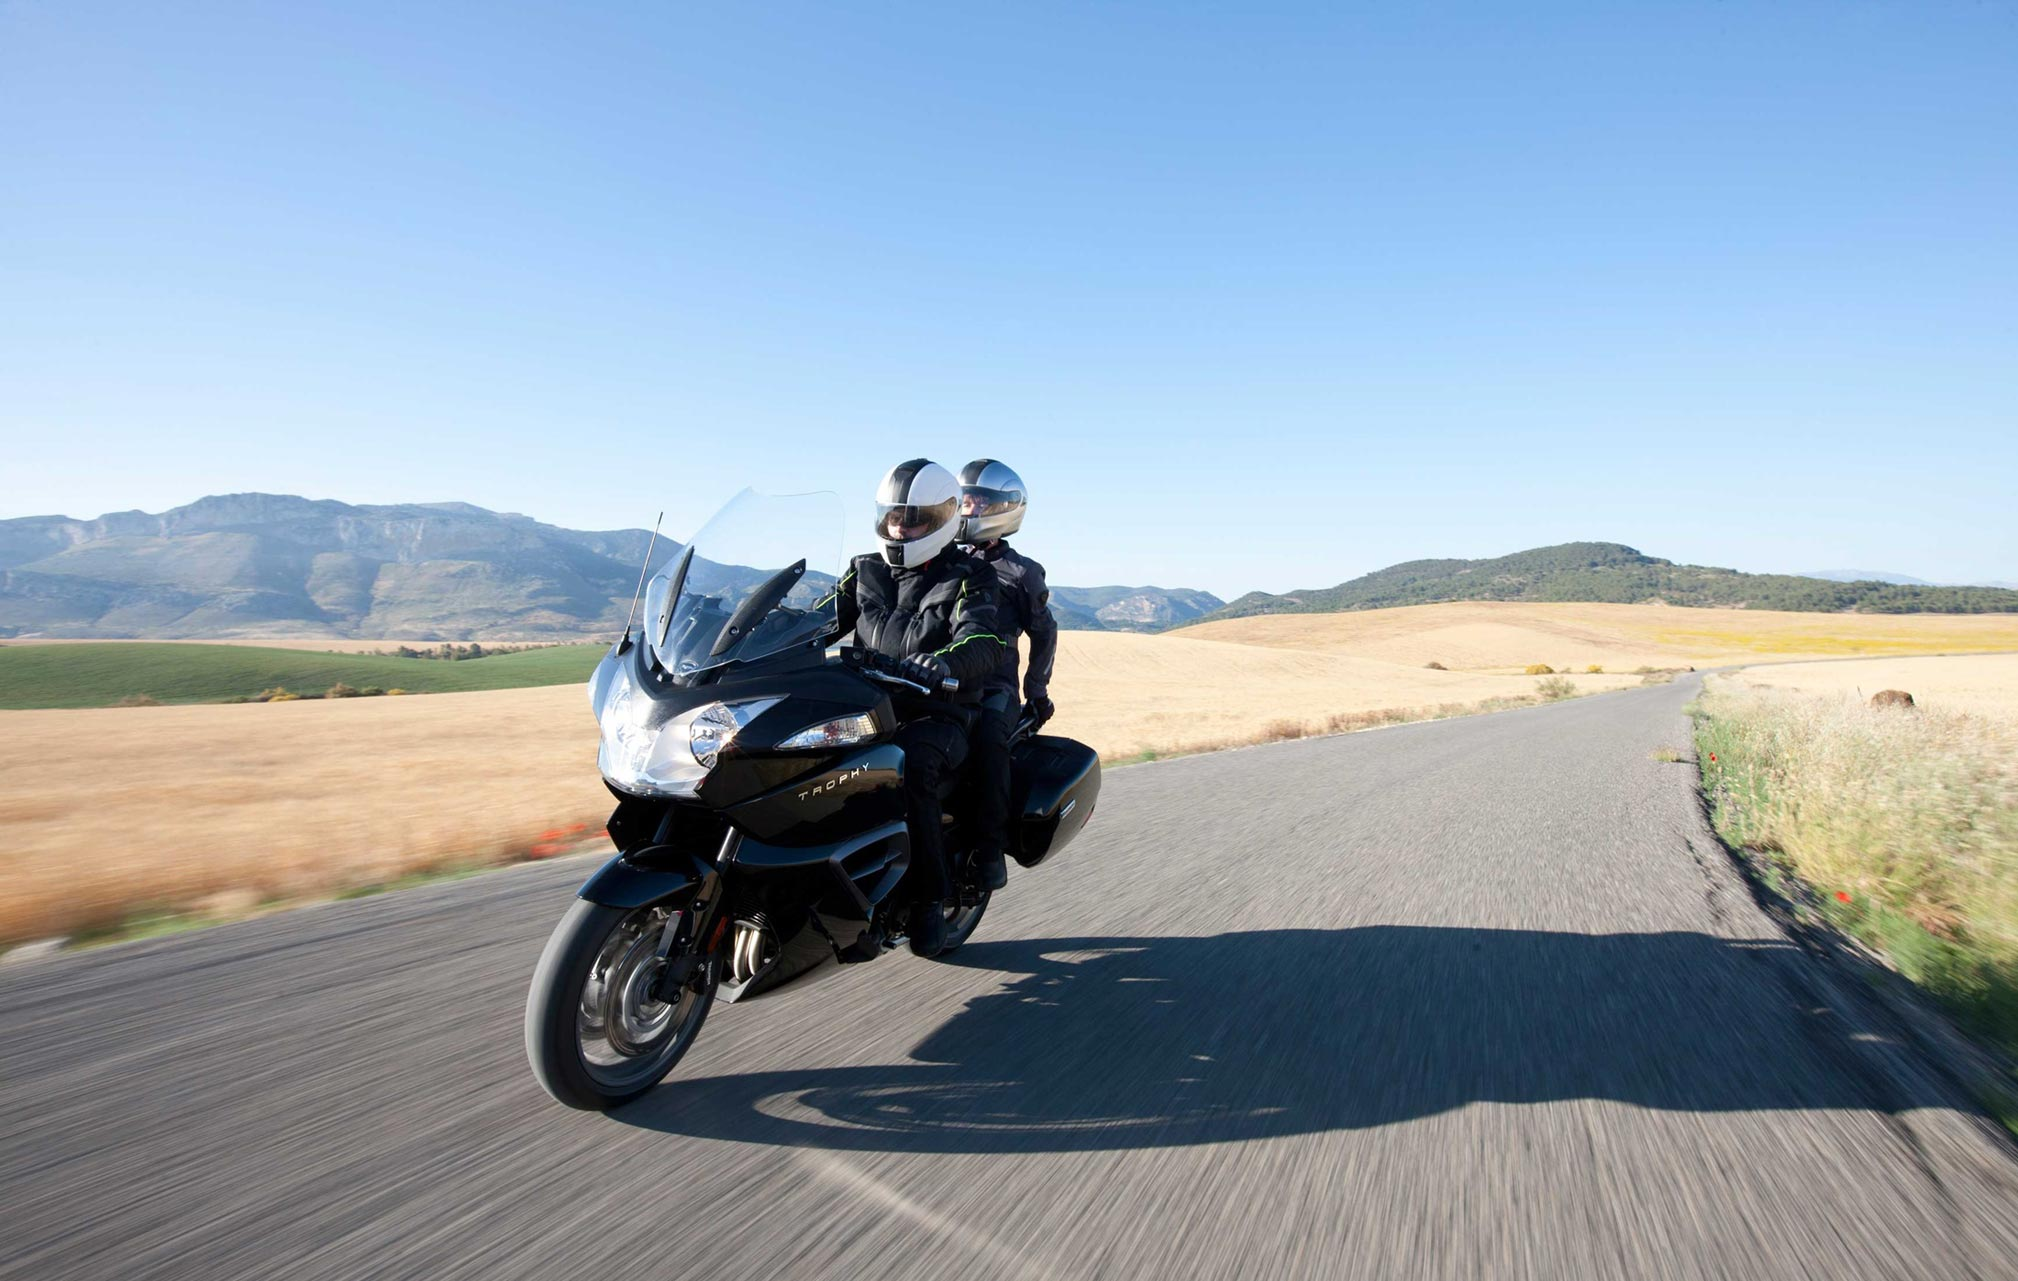 2018 triumph trophy se review - totalmotorcycle